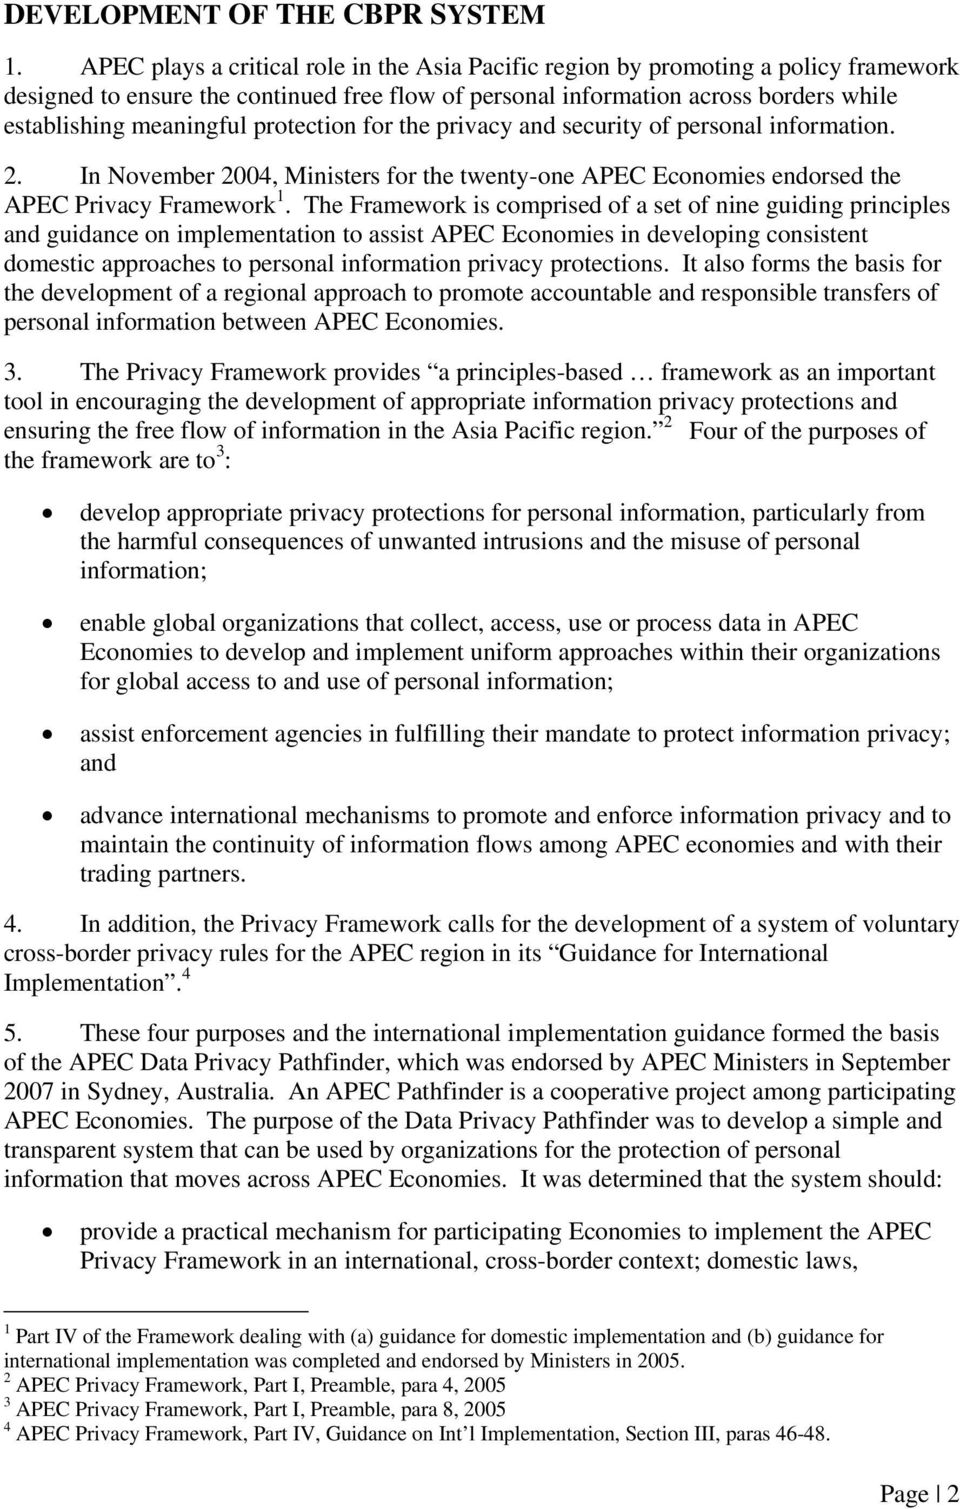 protection for the privacy and security of personal information. 2. In November 2004, Ministers for the twenty-one APEC Economies endorsed the APEC Privacy Framework 1.